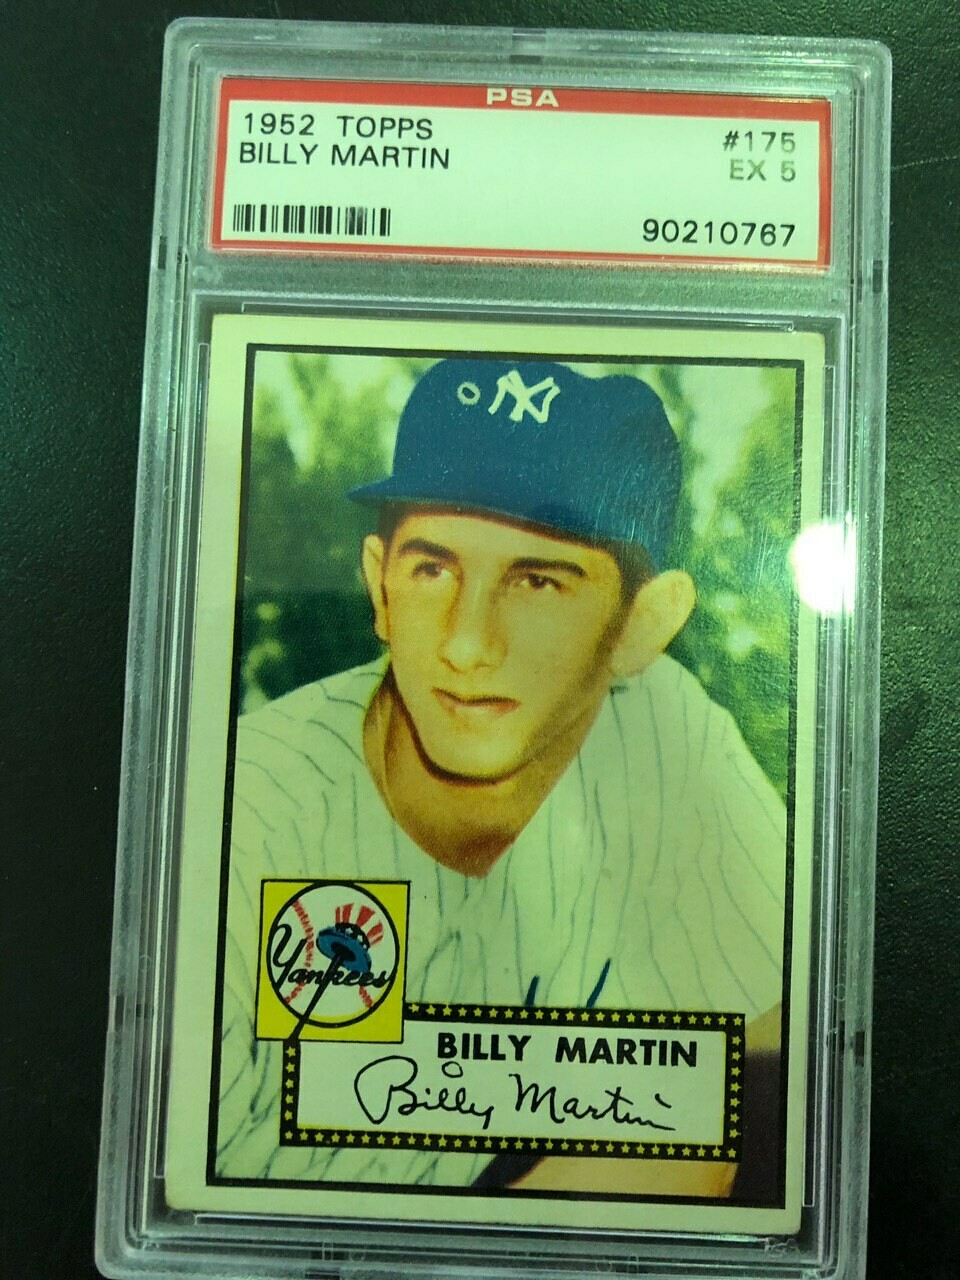 1952 Topps #175 Billy Martin rookie, PSA graded 5, $395